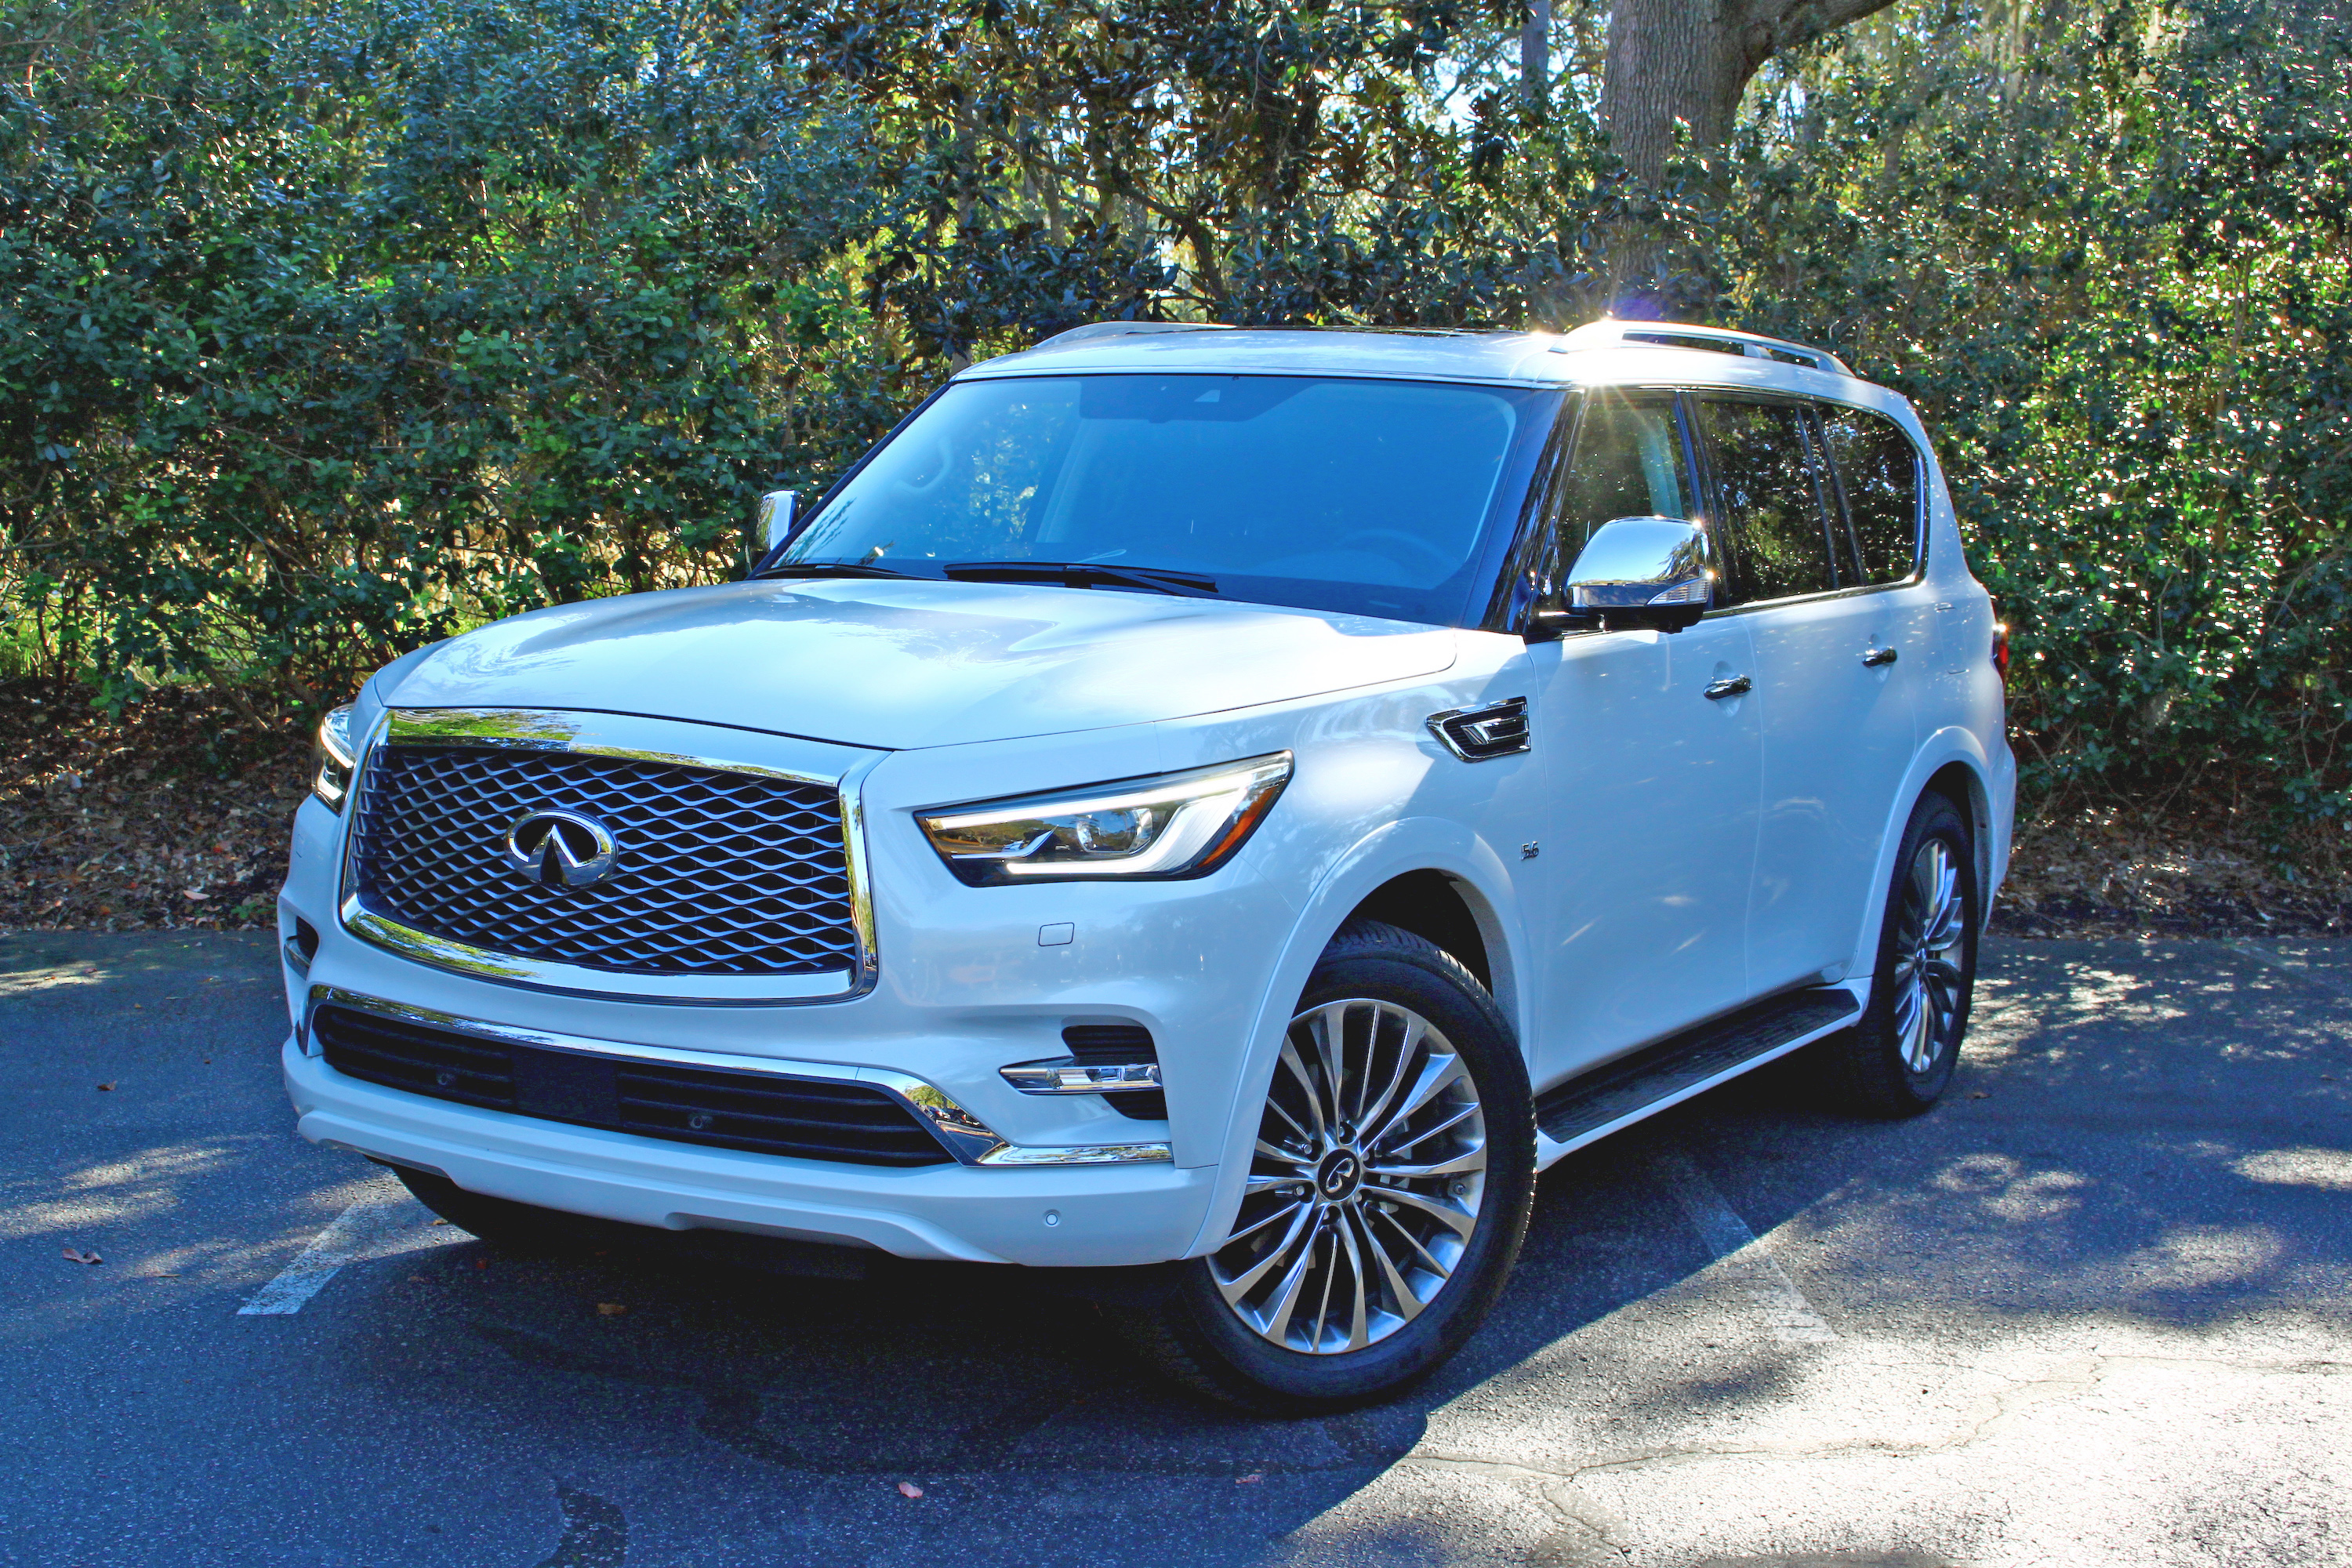 New Land Rover 2018 >> 2018 Infiniti QX80 Review - AutoGuide.com